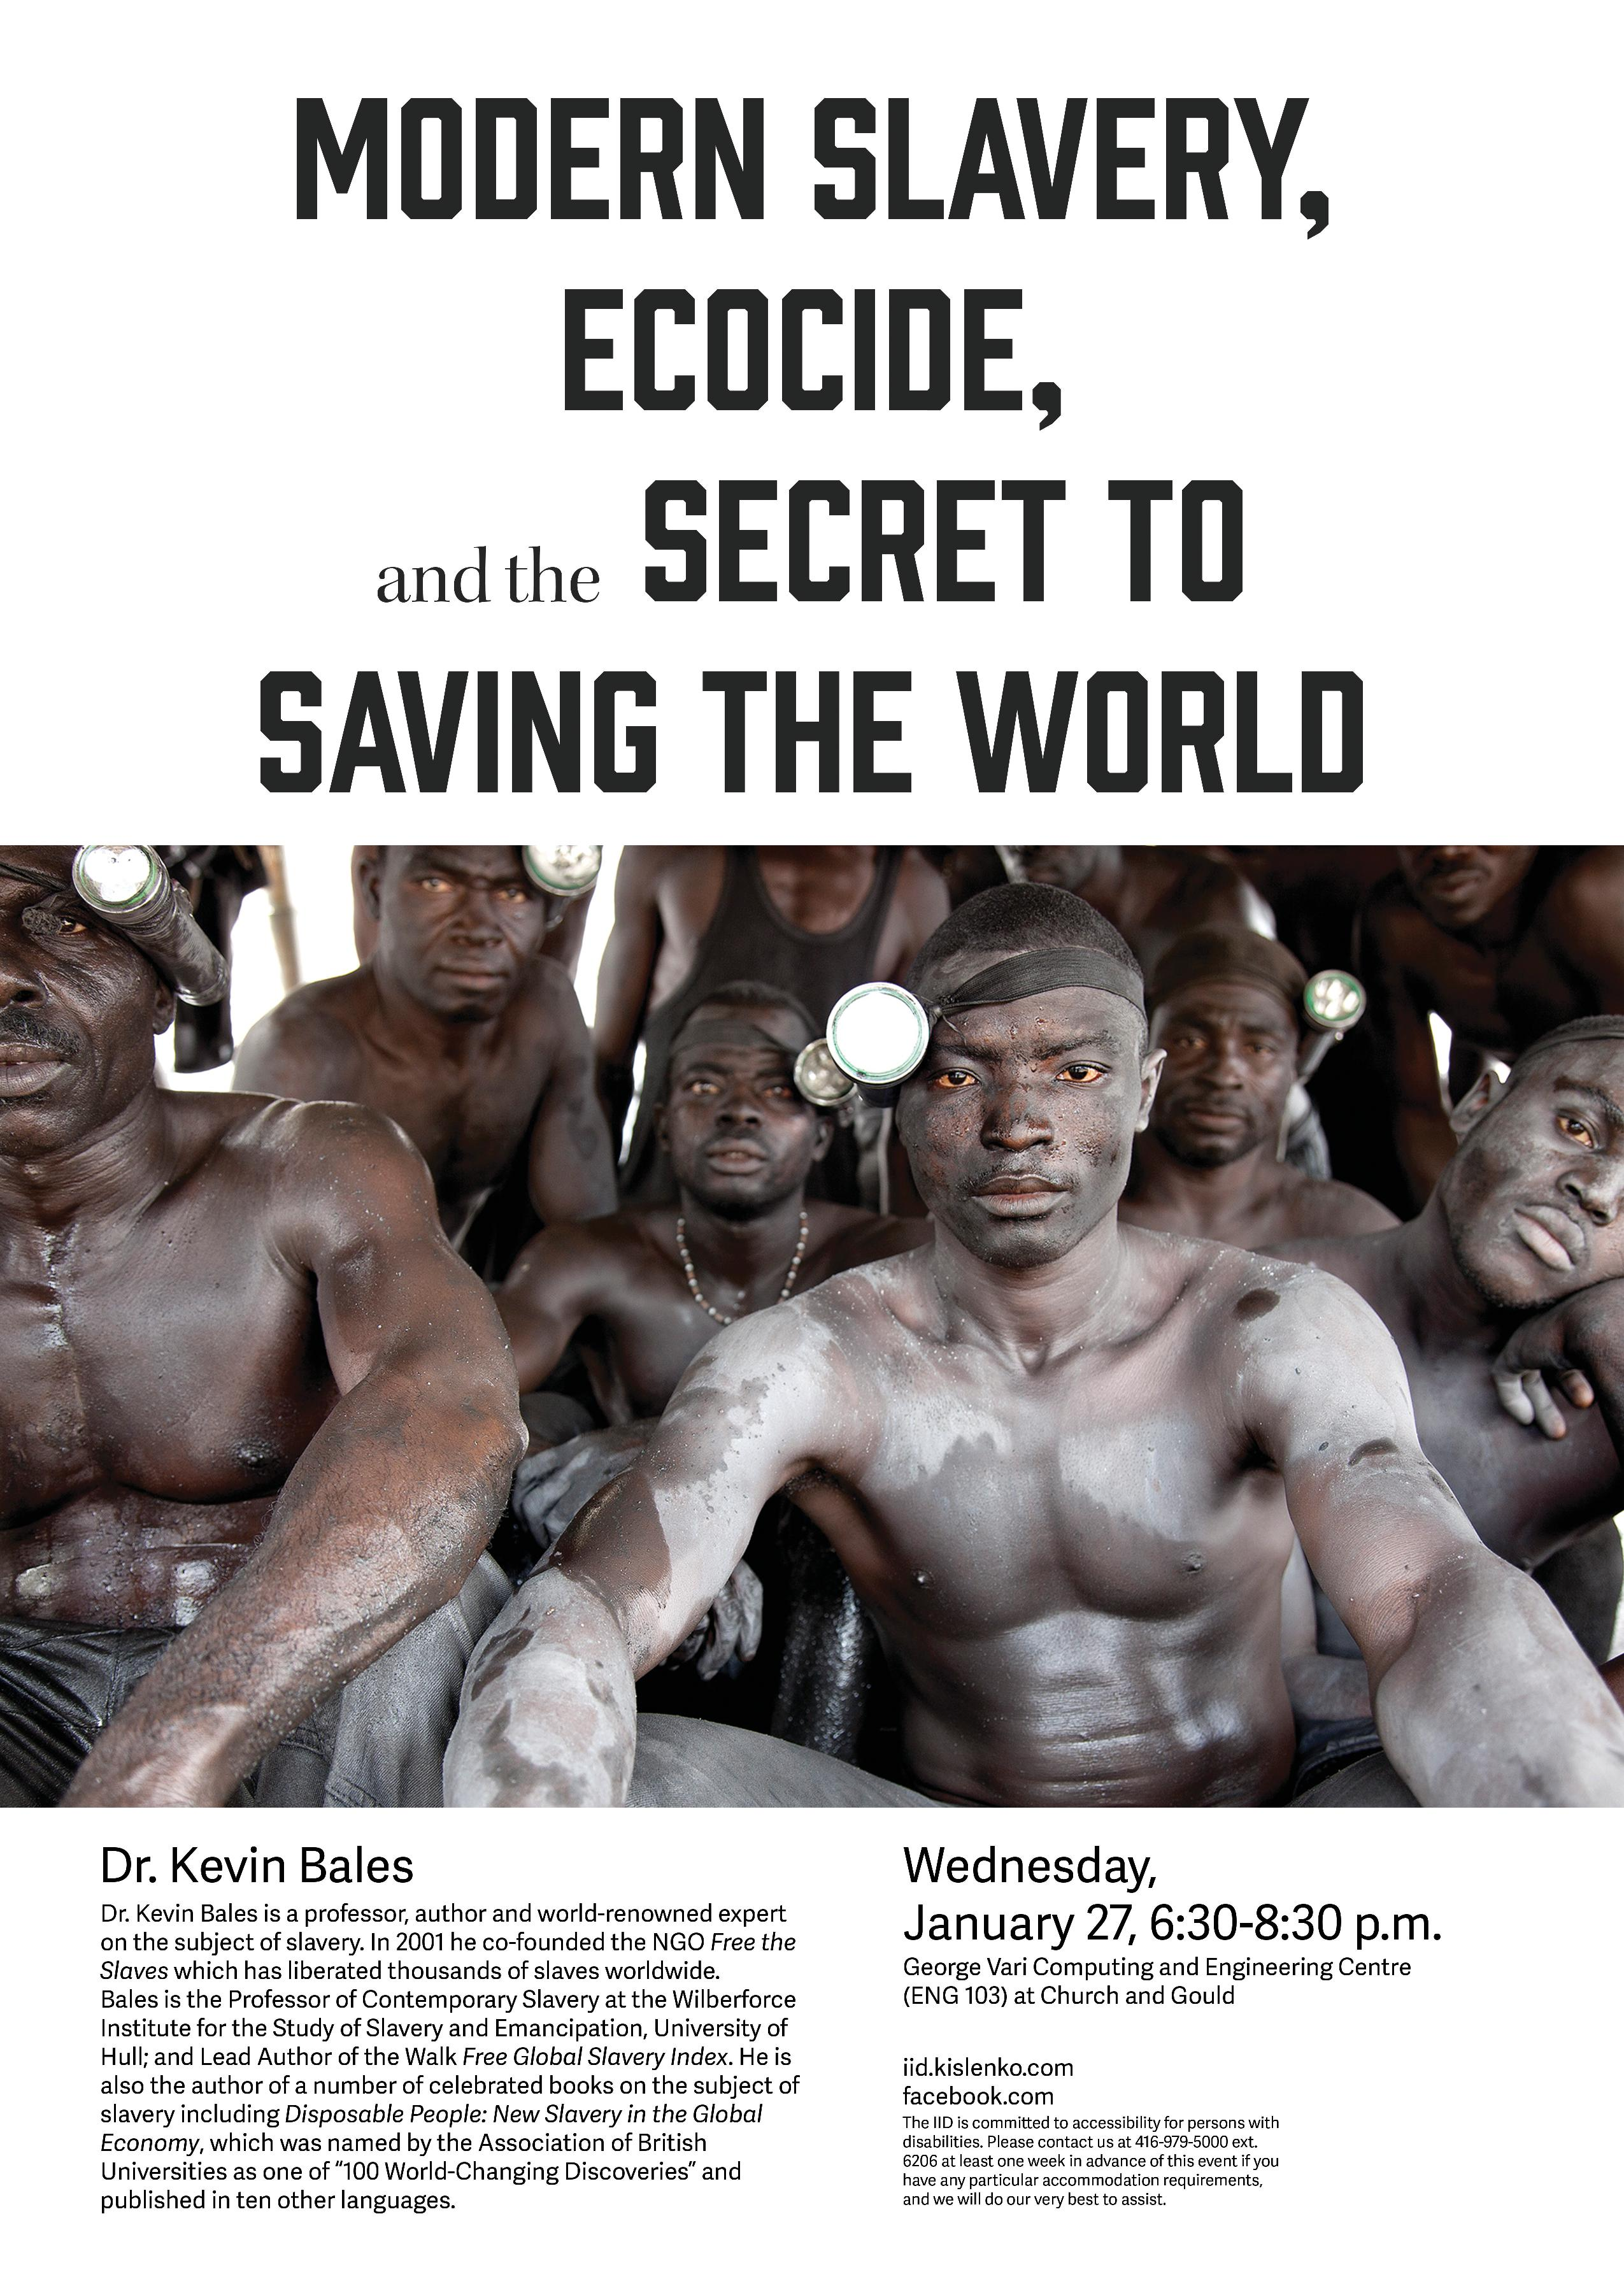 Modern Slavery, Ecocide and the Secret to Saving the World with Dr. Kevin Bales, Wednesday, Jan. 27, 2016